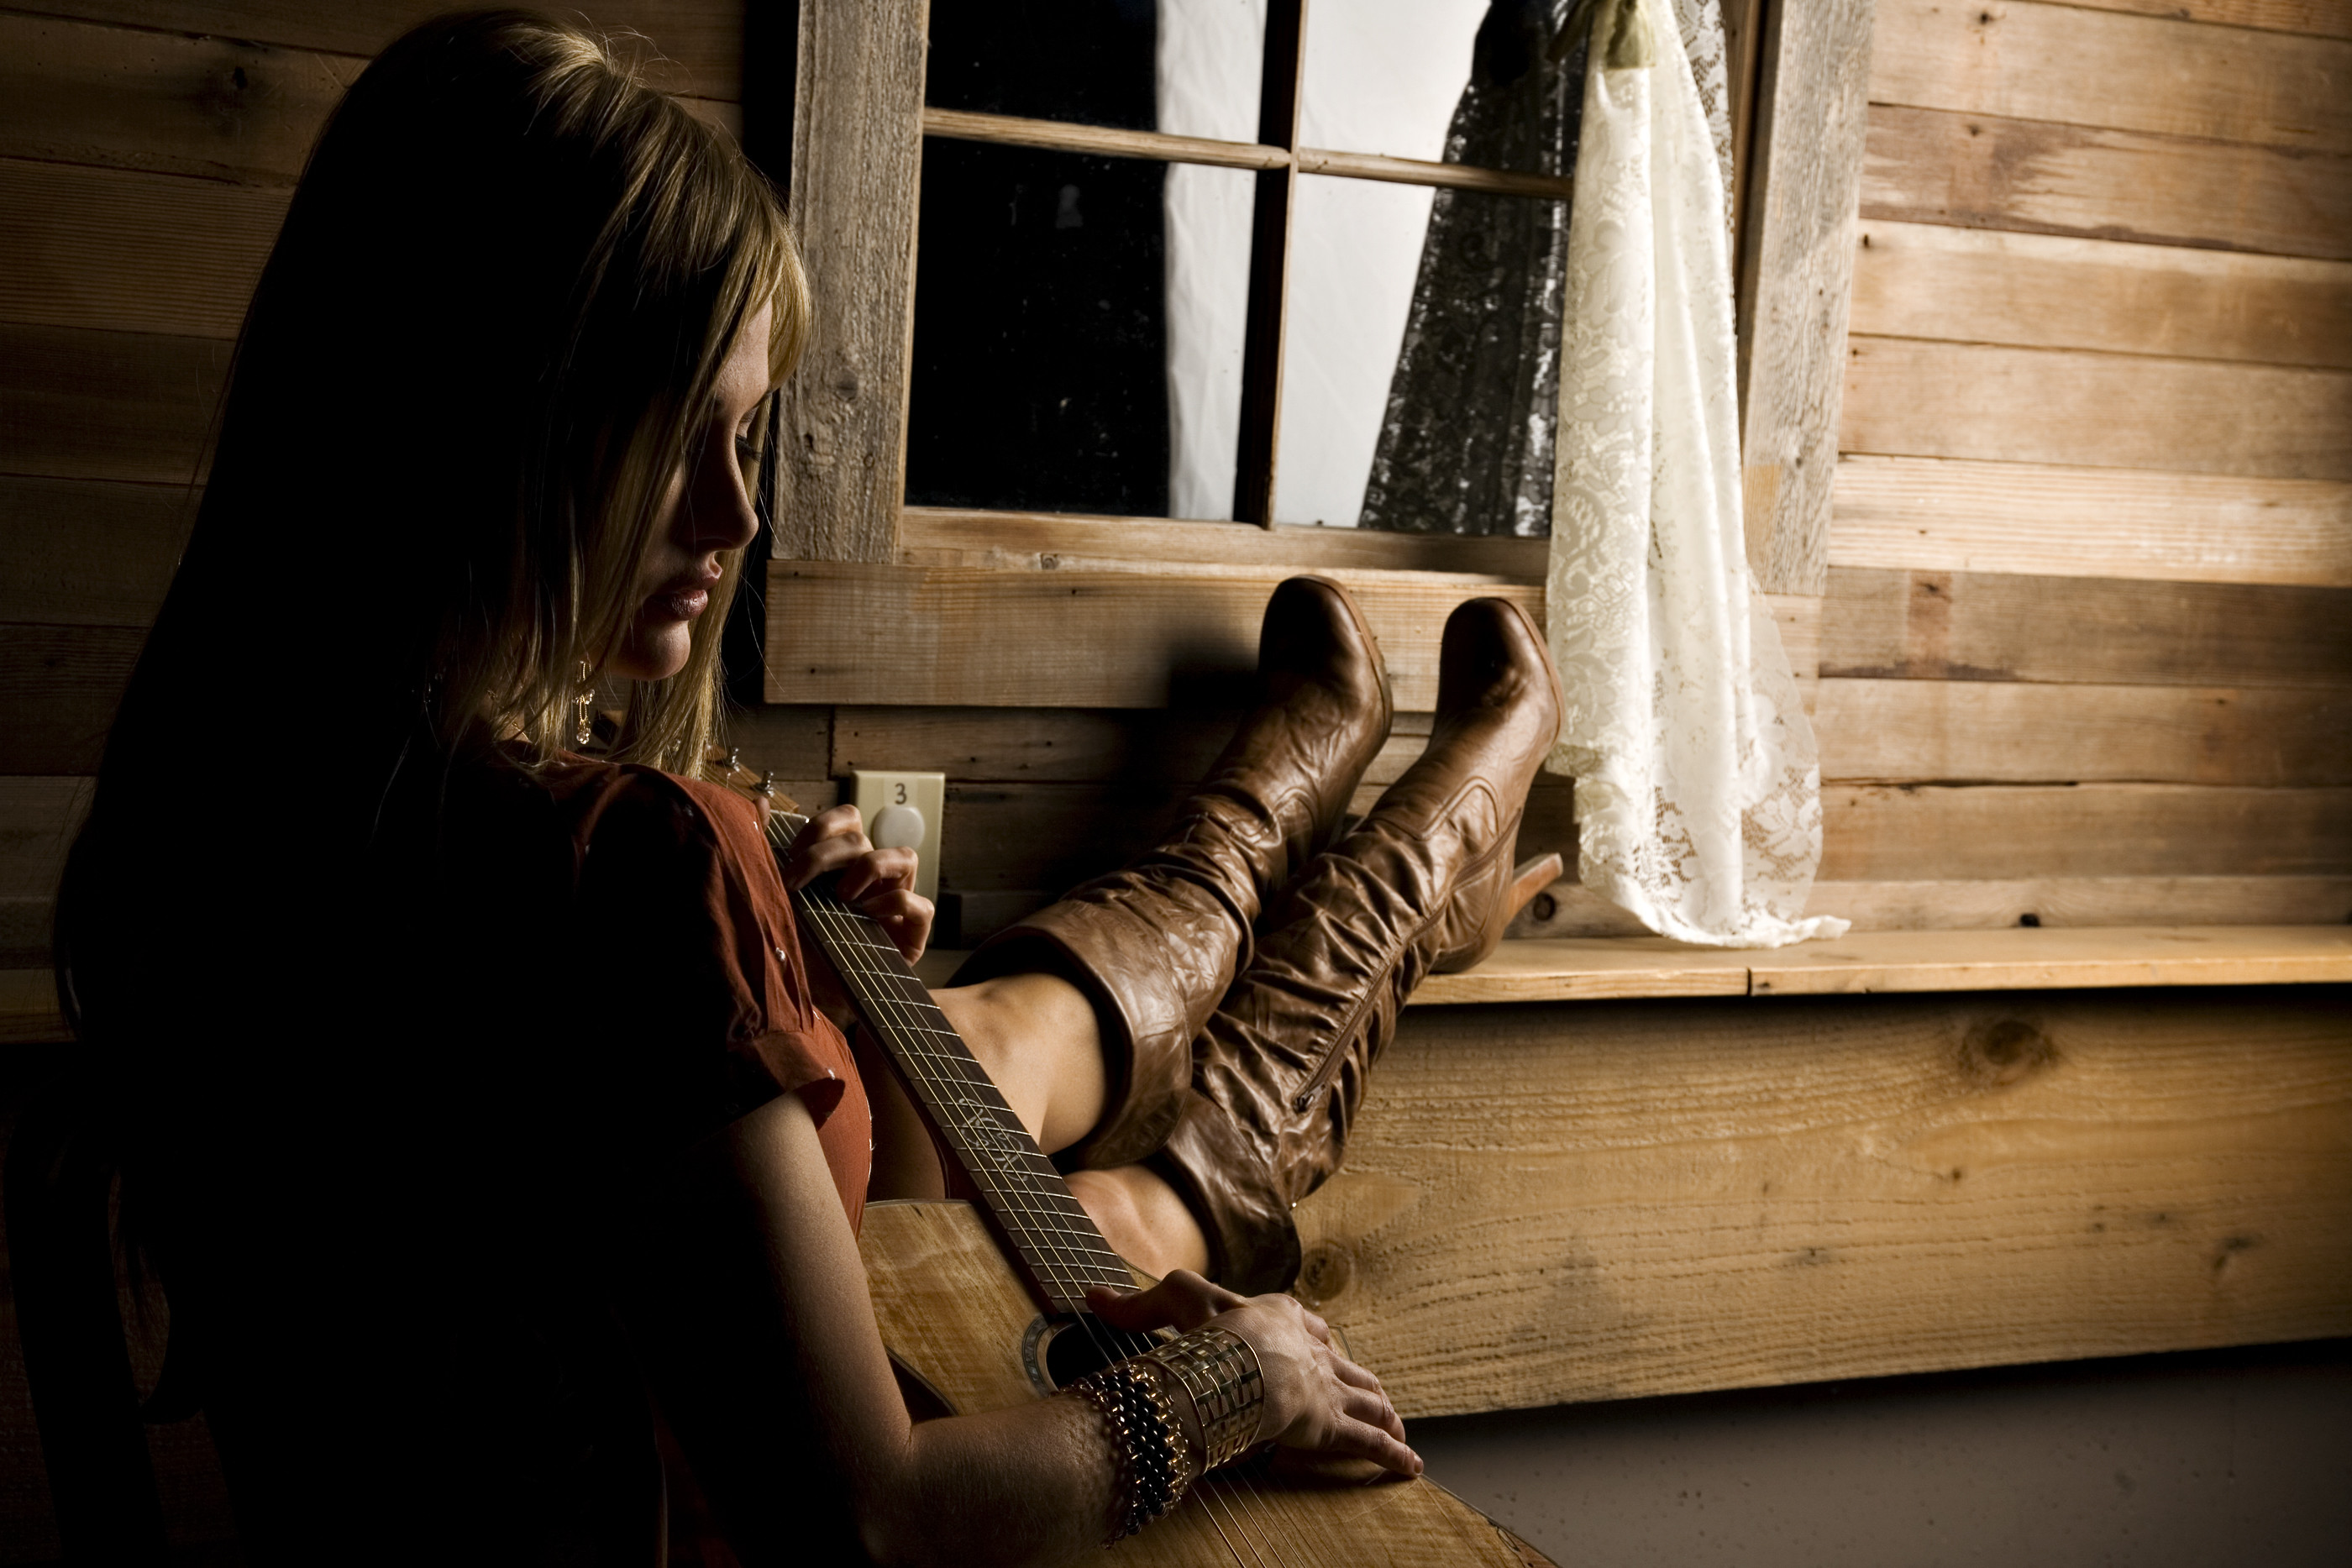 wallpaper.wiki-Country-girl-guitar-drapes-cowgirl-photos-